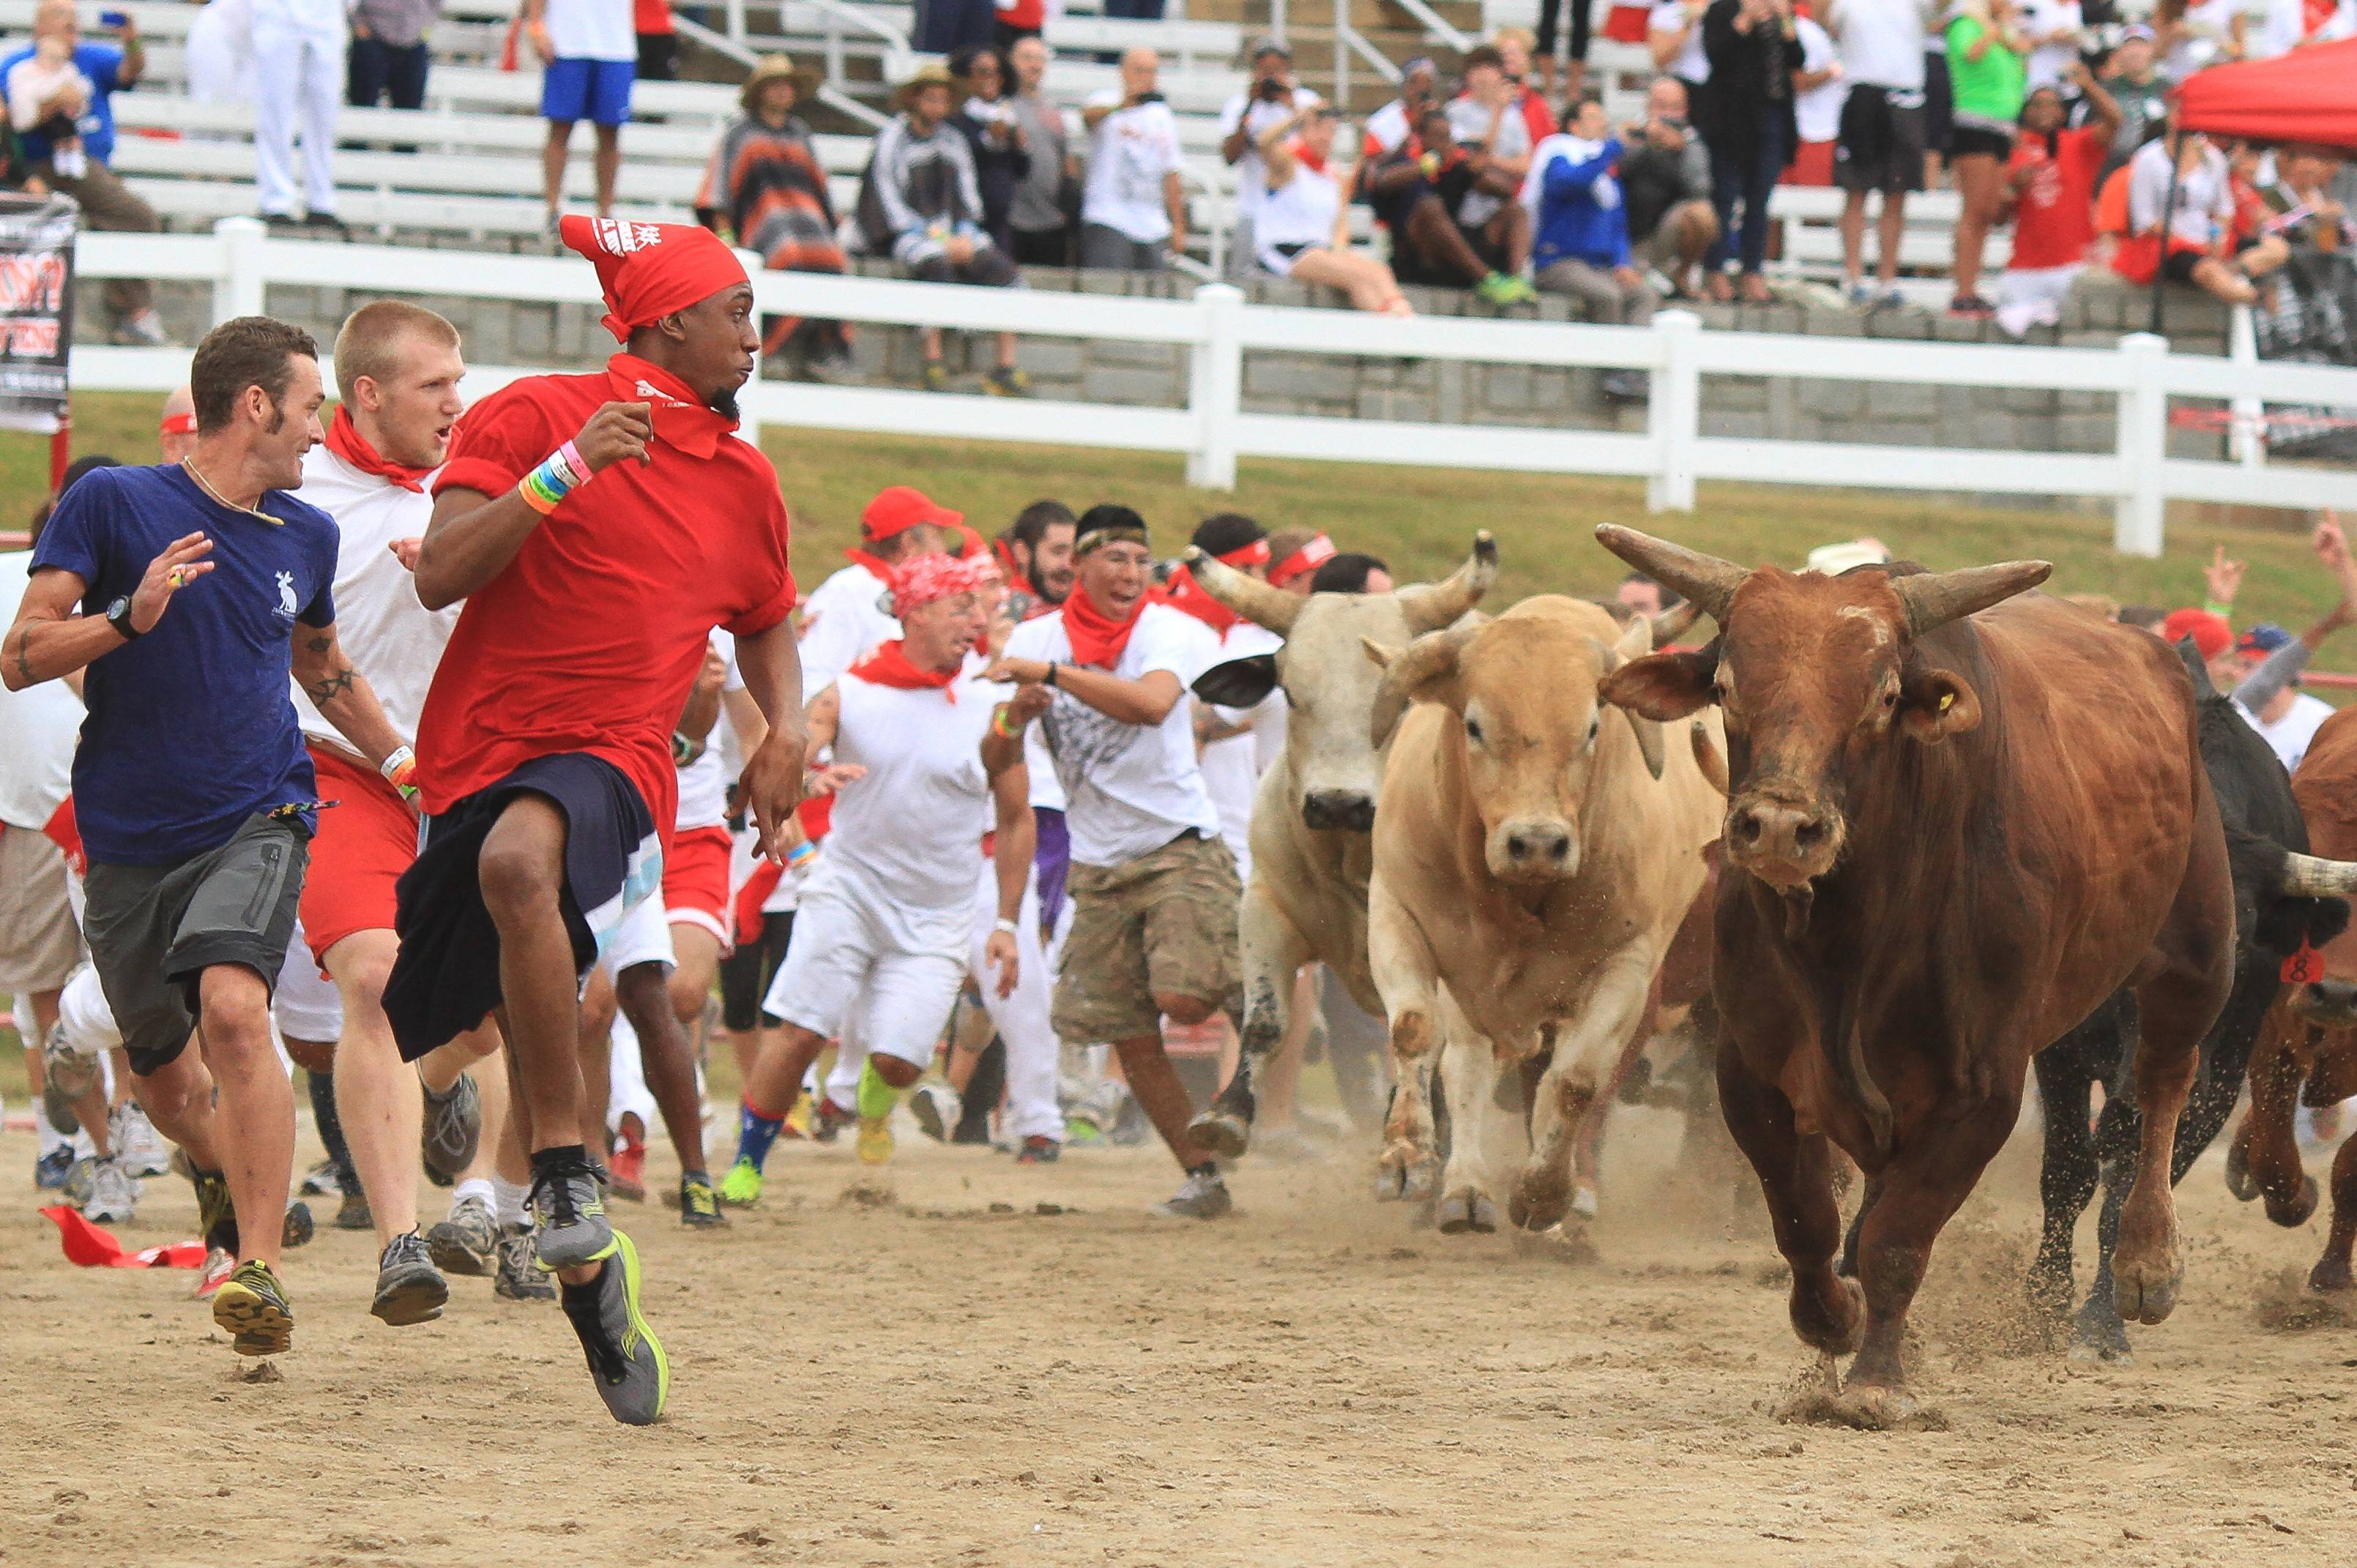 Eighteen bulls will be released in groups of six, providing three passes for fans at the Great Bull Run in Cicero.